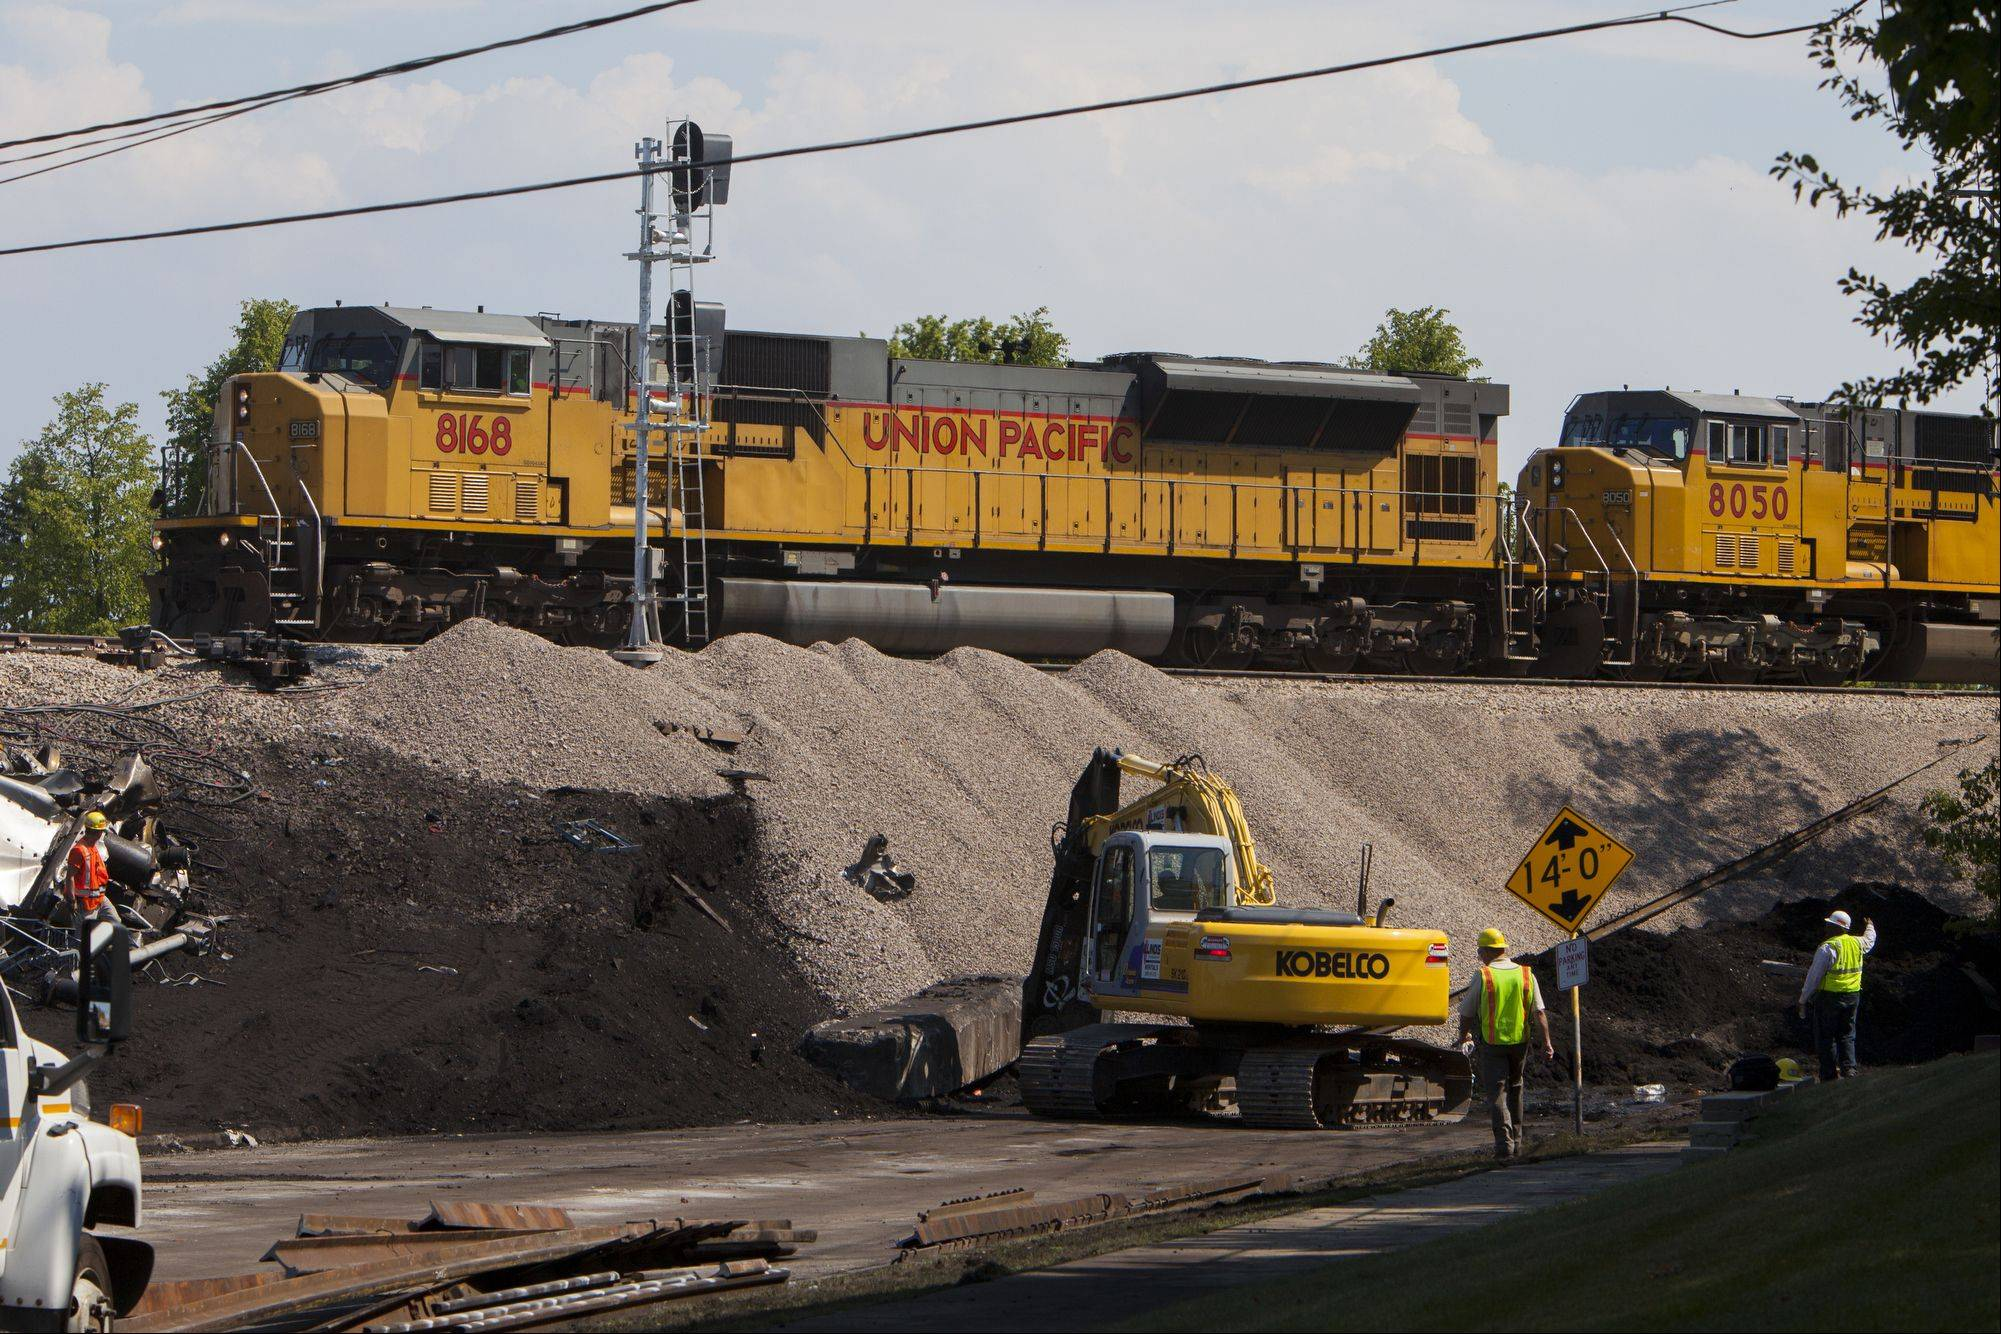 Coal trains running again after fatal derailment